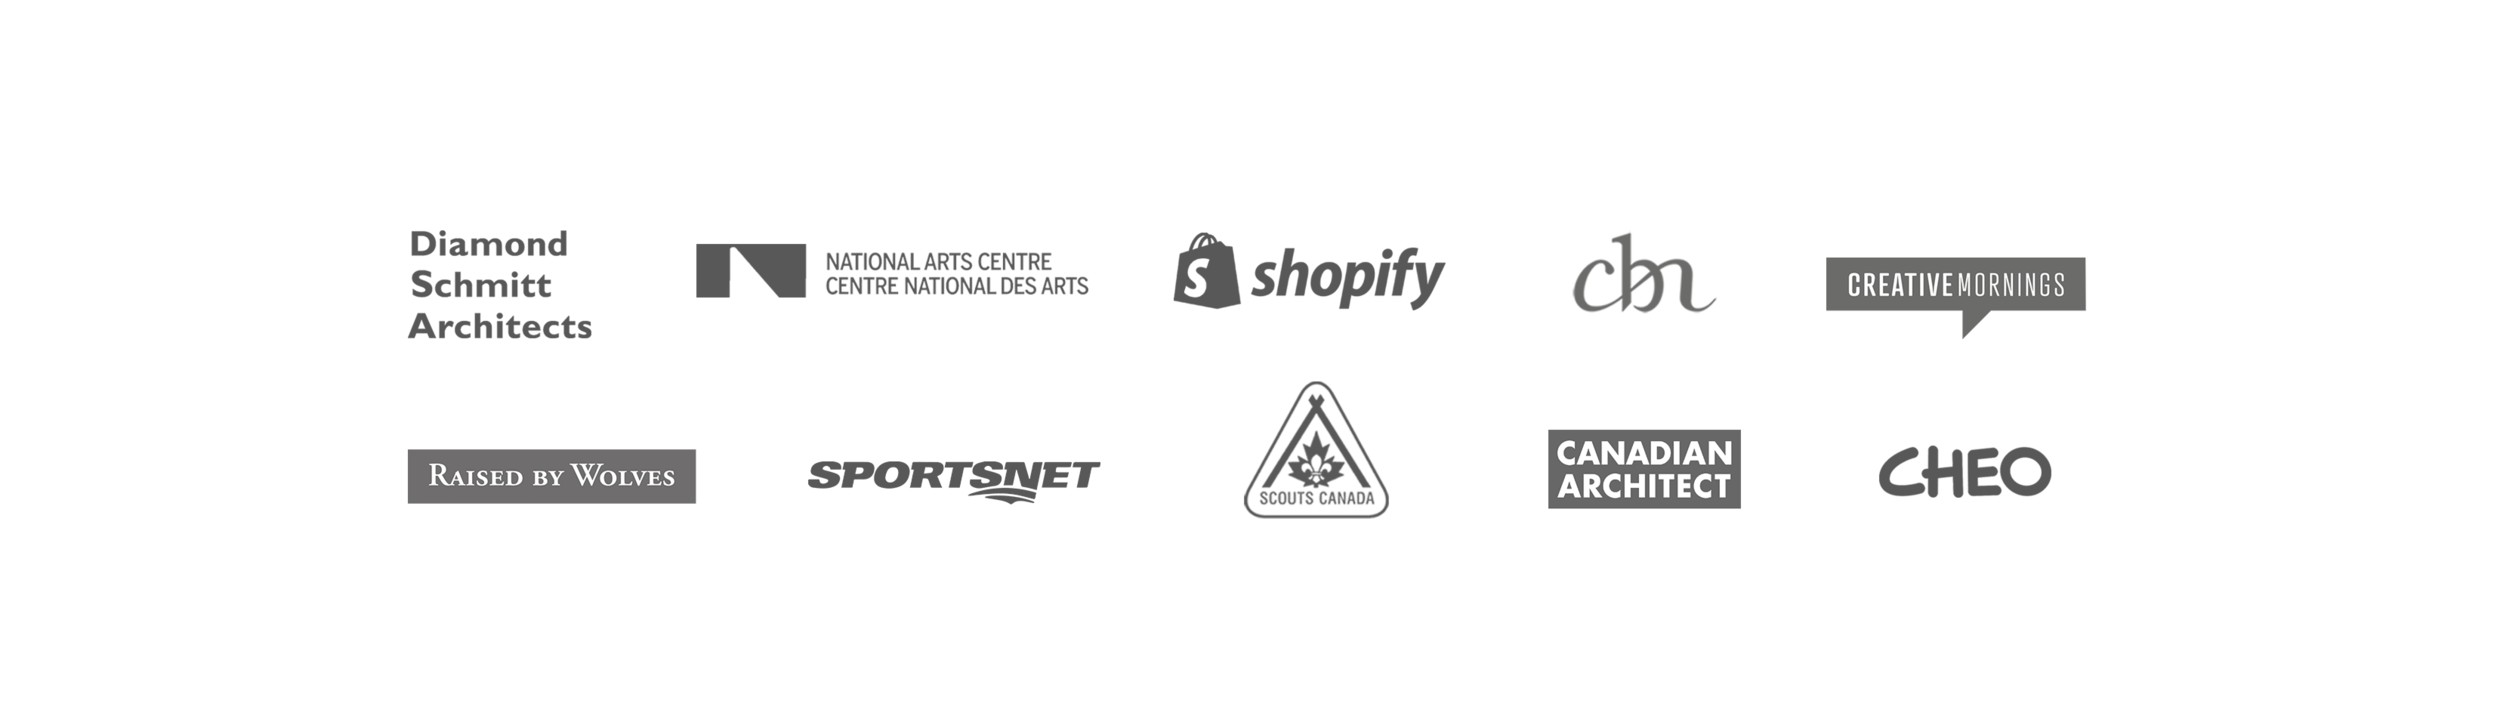 Client list overview: Canadian Architect Magazine, Canadian Bank Note Company, Sportsnet, Raised By Wolves, Interior Design Show Canada, Scouts Canada, CHEO (Children's Hospital of Eastern Ontario), Dwell, Design Lines Magazine, Canadian Interior Magazine, Pure Yoga, Nua Office, Loic, Gold Bar Whiskey Company.